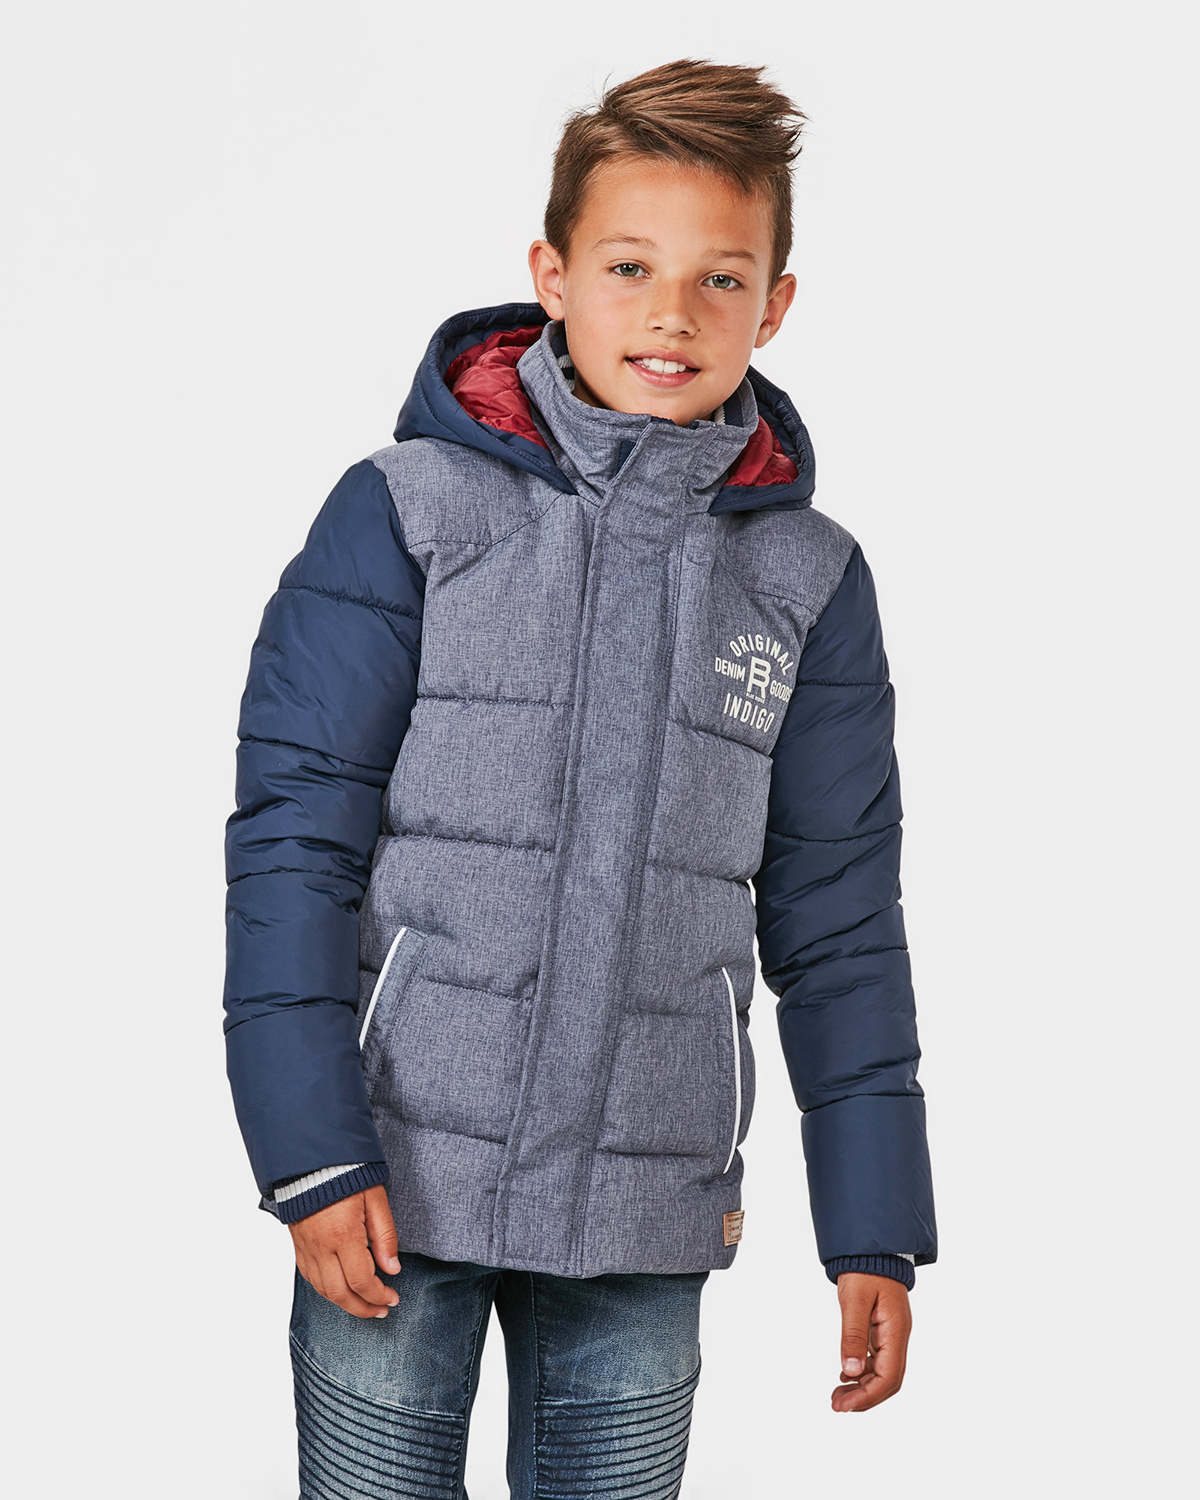 jungen jacken winter 24brands kinder jungen winter jacke winterjacke winterjacken f r jungs. Black Bedroom Furniture Sets. Home Design Ideas